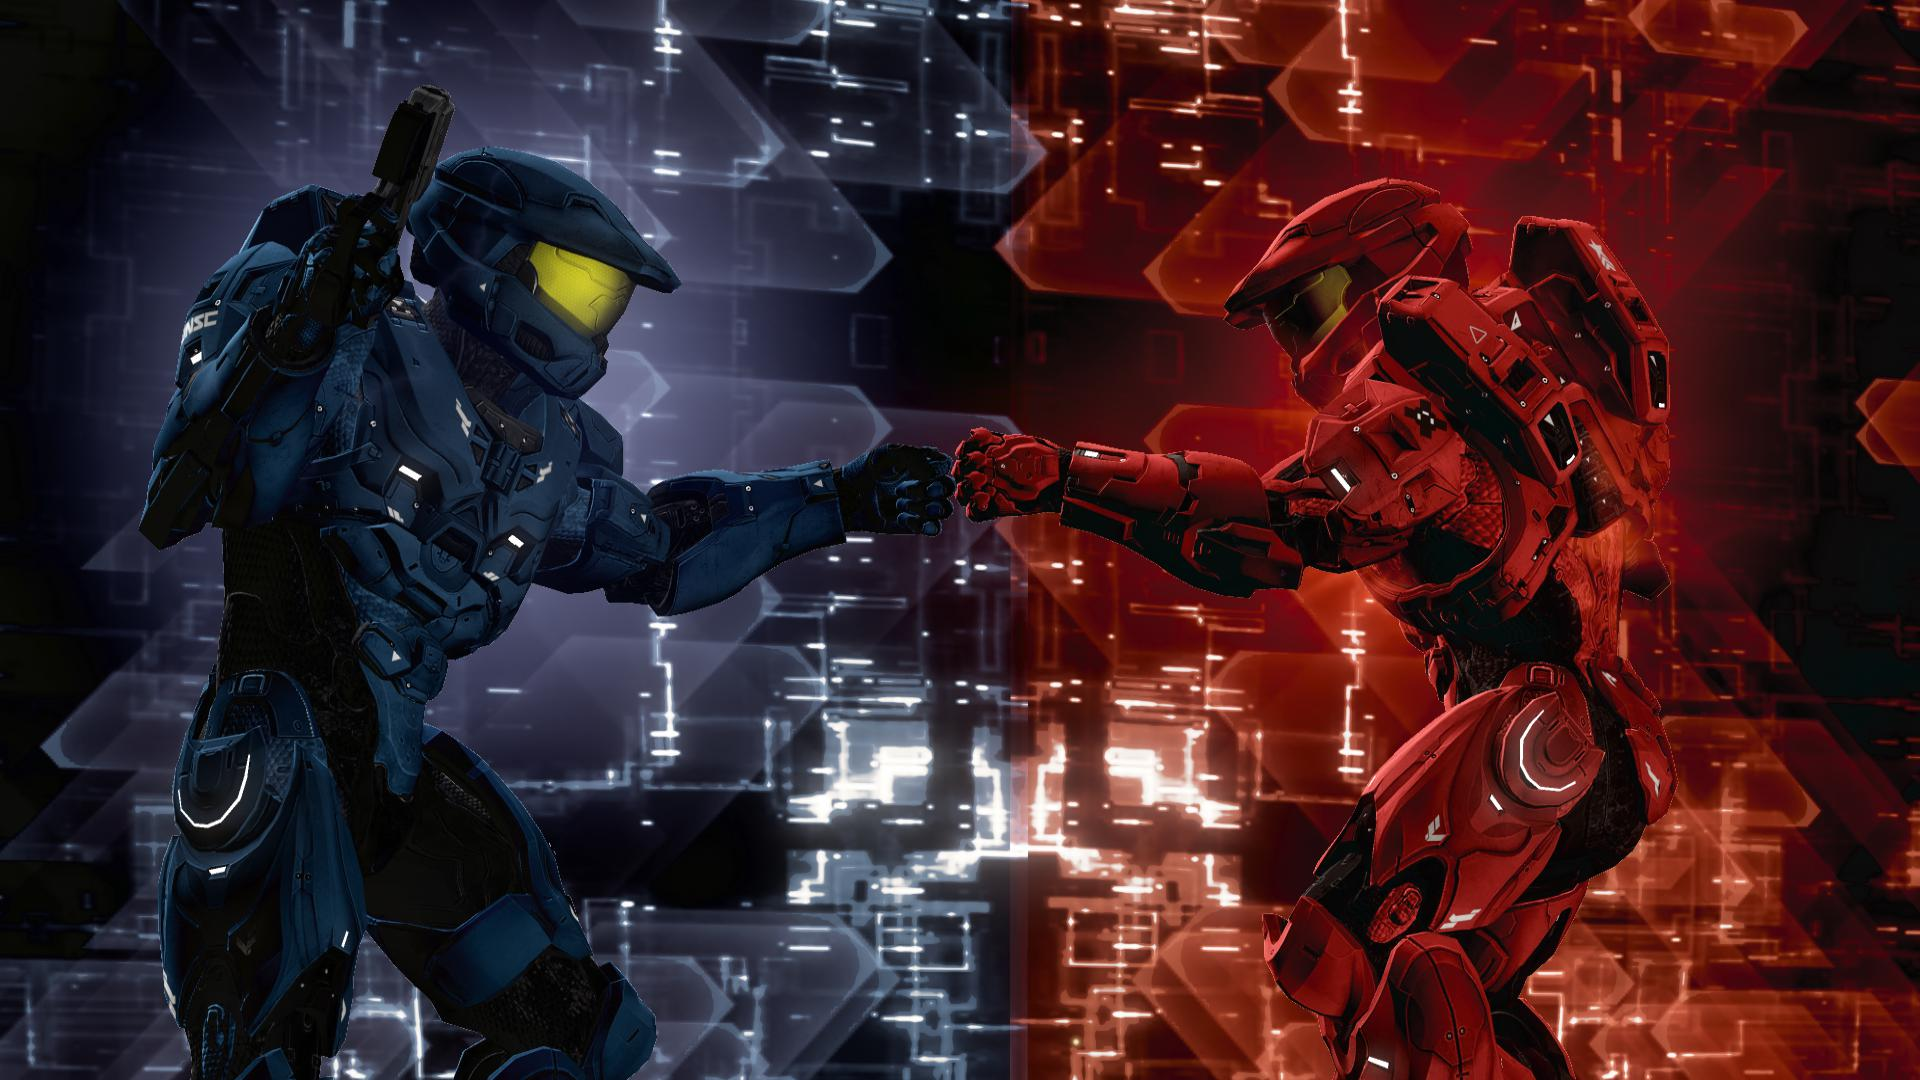 Red Vs Blue Backgrounds Sf Wallpaper